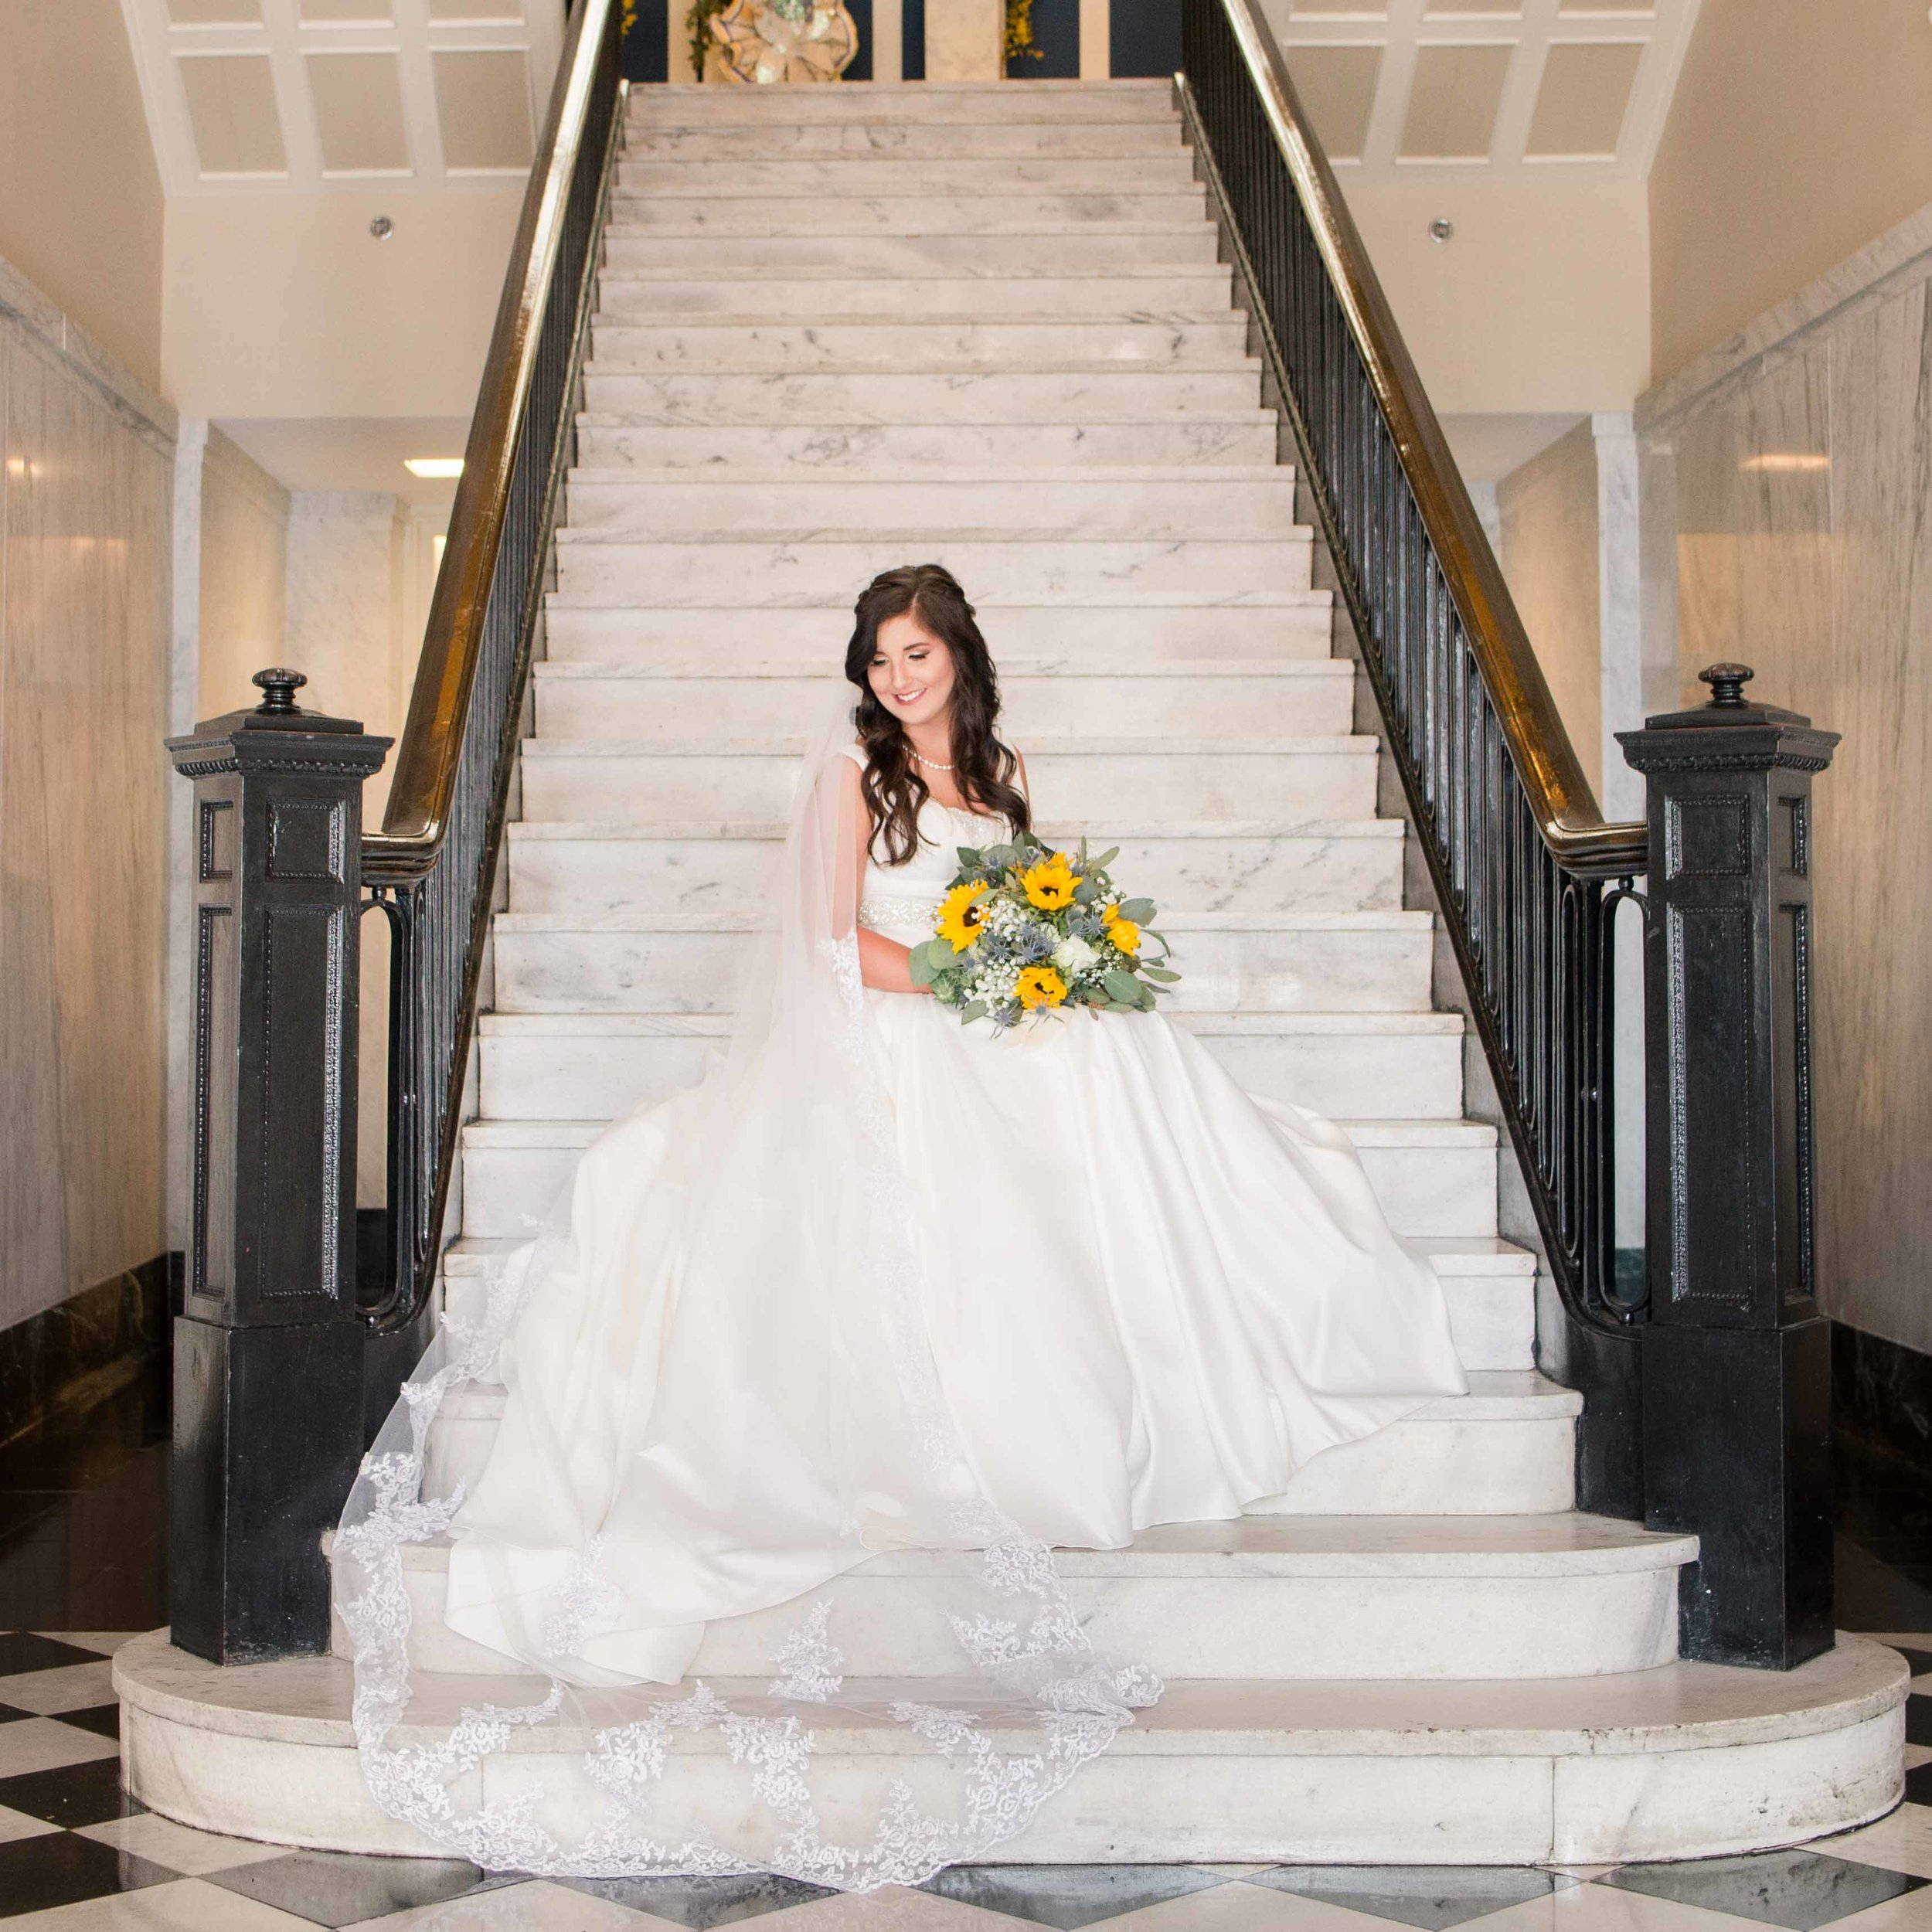 Shelby Mobile Alabama Bridal Portraits Deborah Michelle Photography History Museum of Mobile